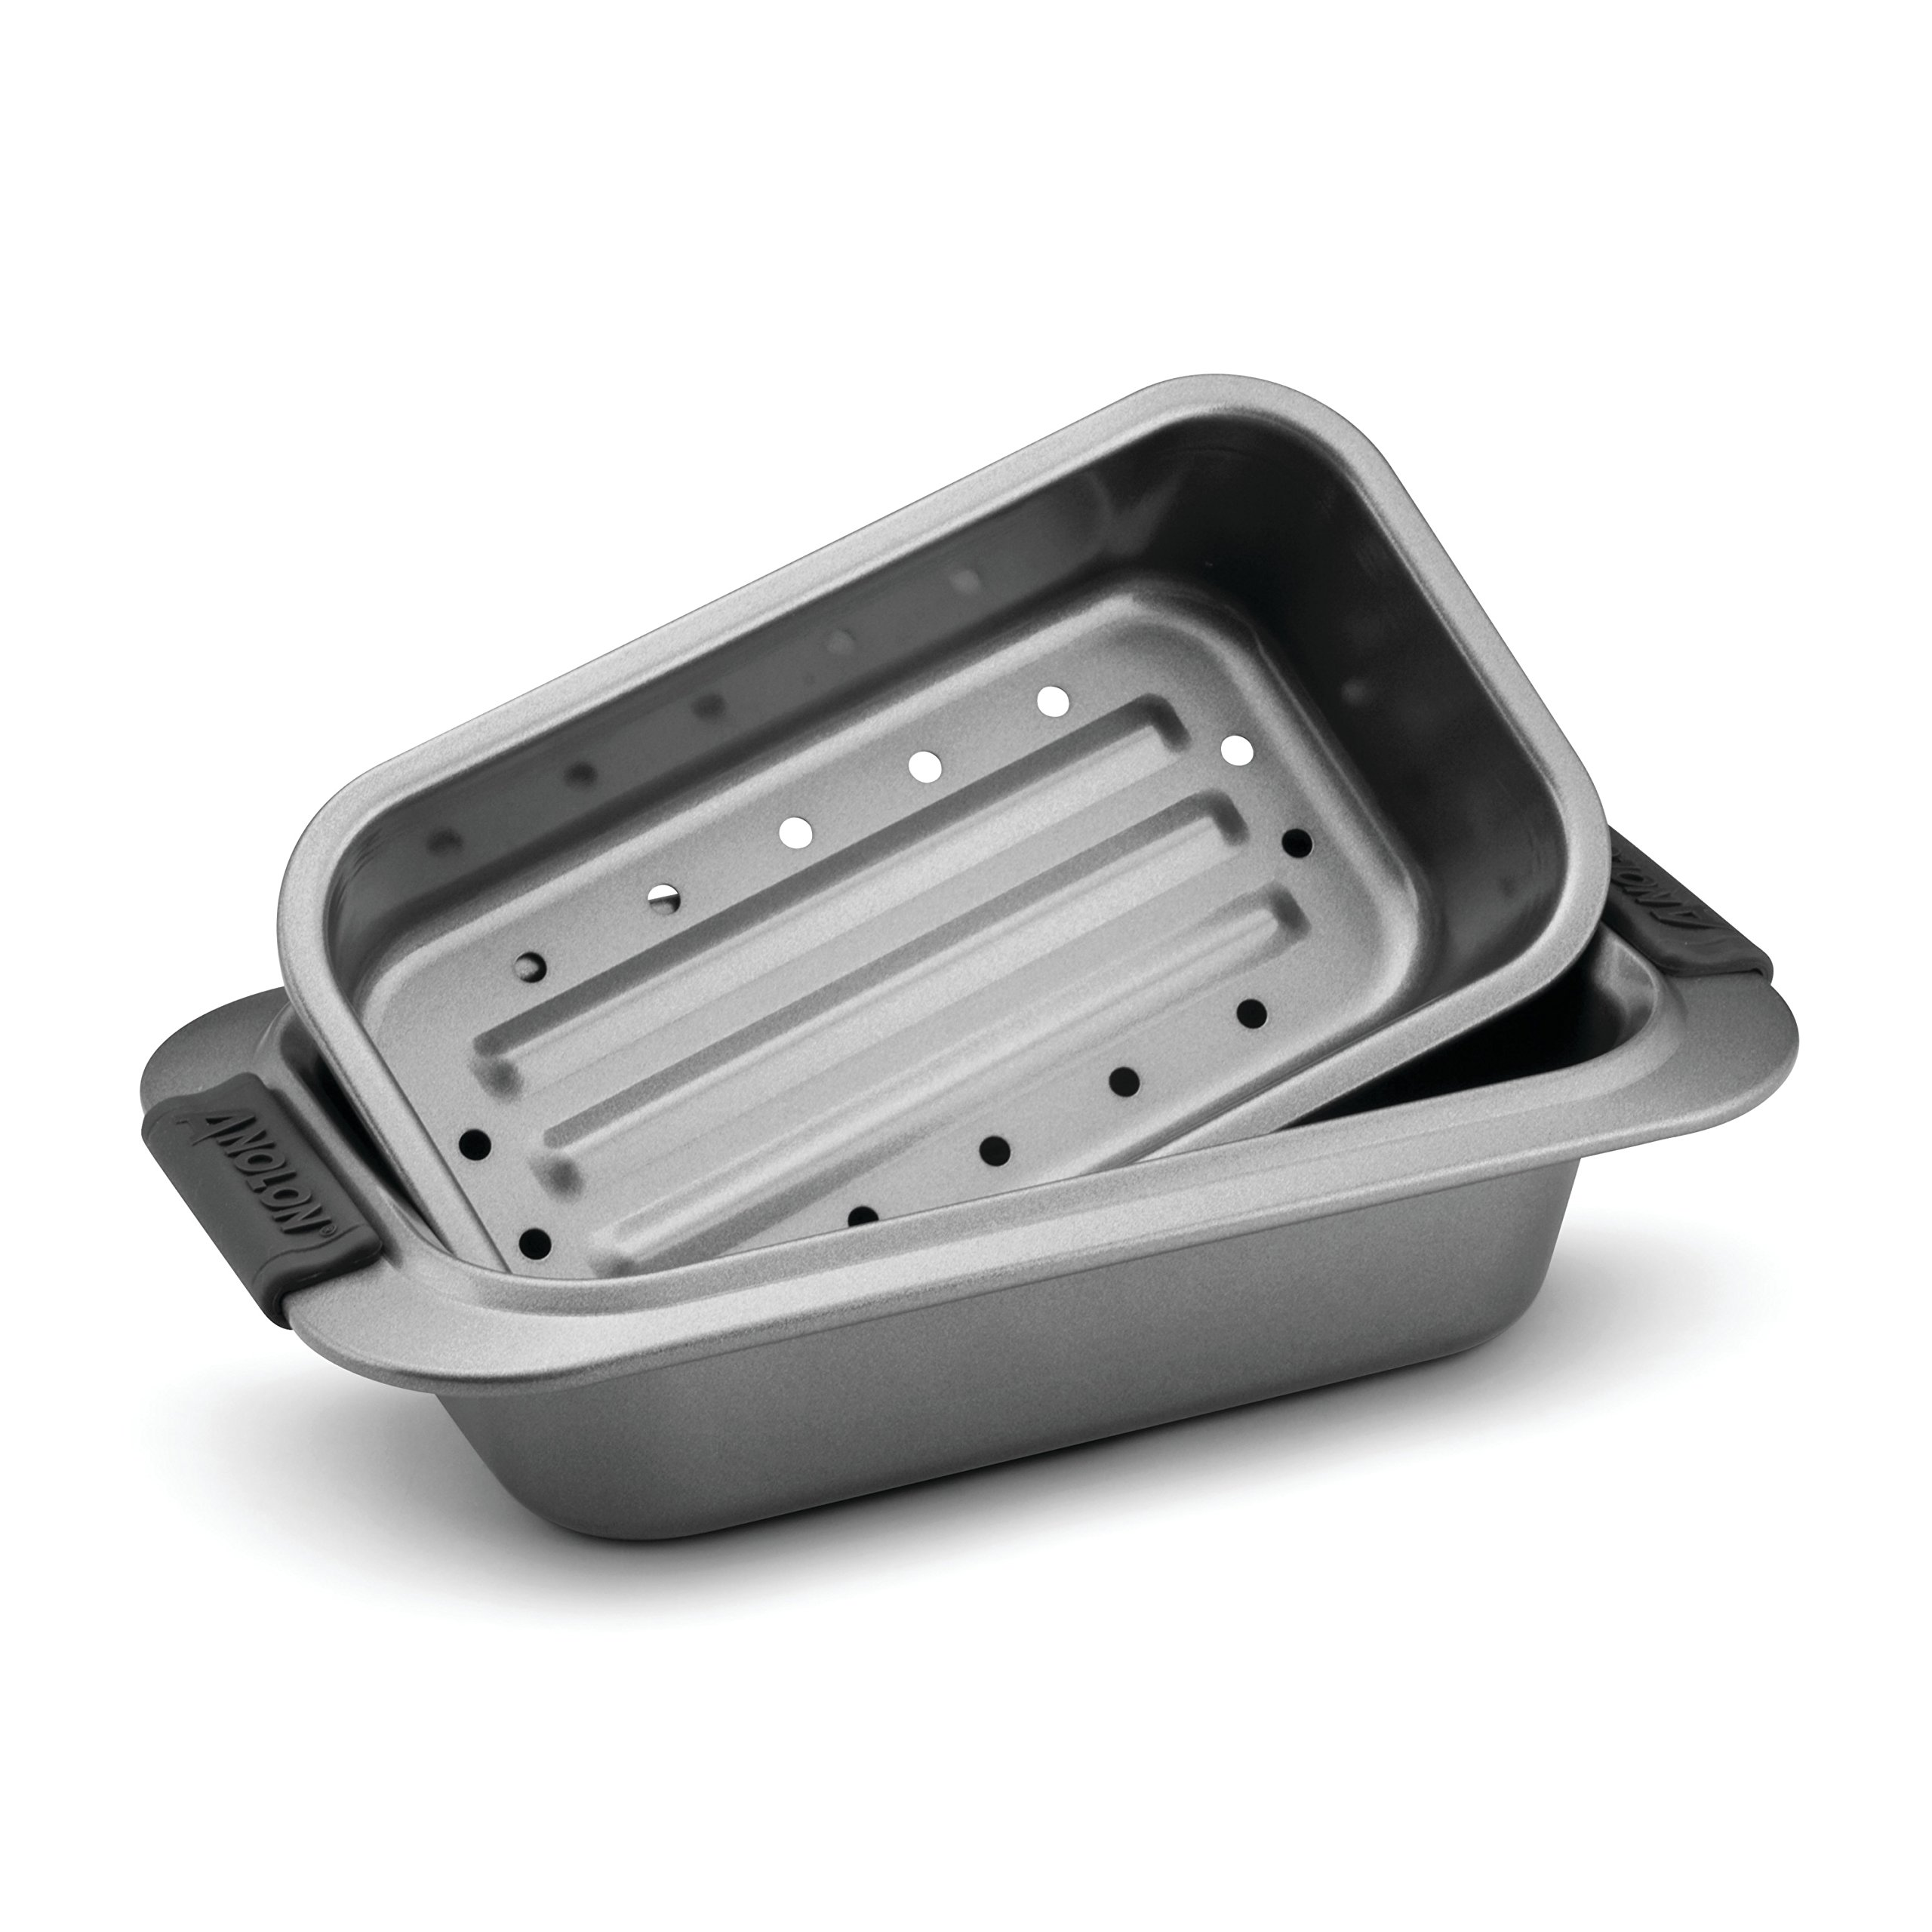 Anolon Advanced Nonstick Bakeware 2-Piece Loaf Pan Set, Gray with Silicone Grips by Anolon